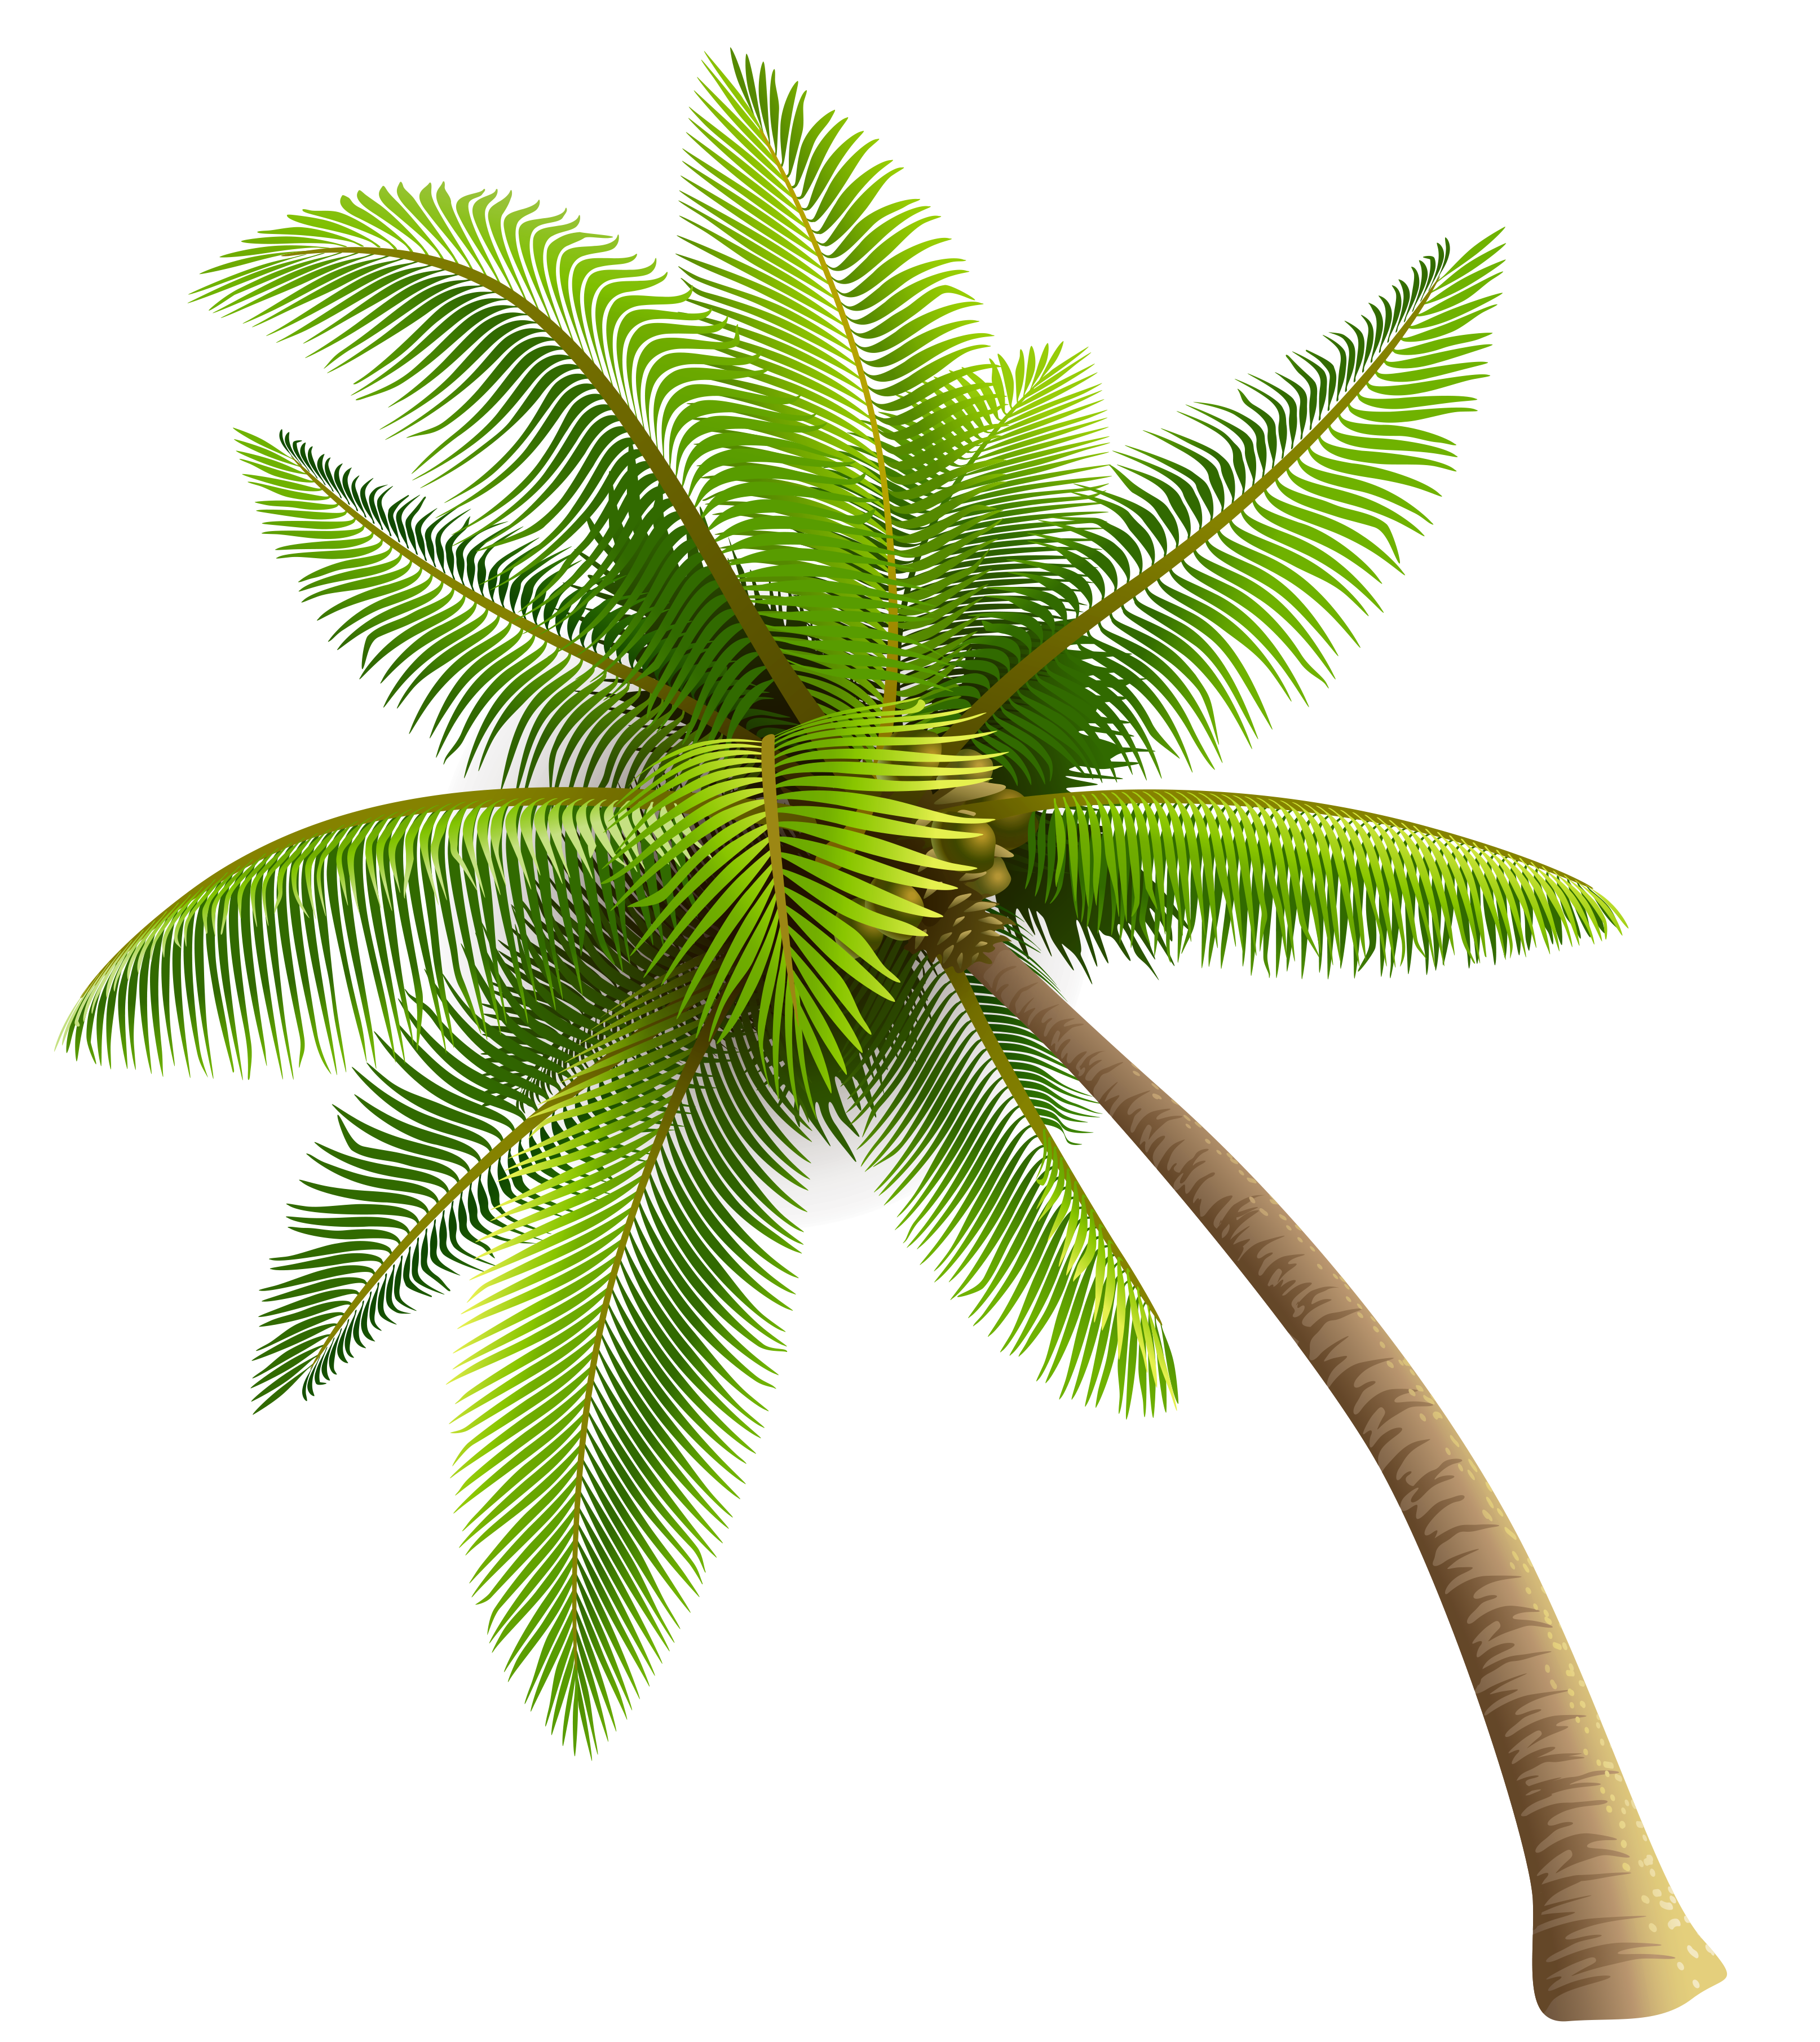 Dolphin clipart drawable. Green palm tree png